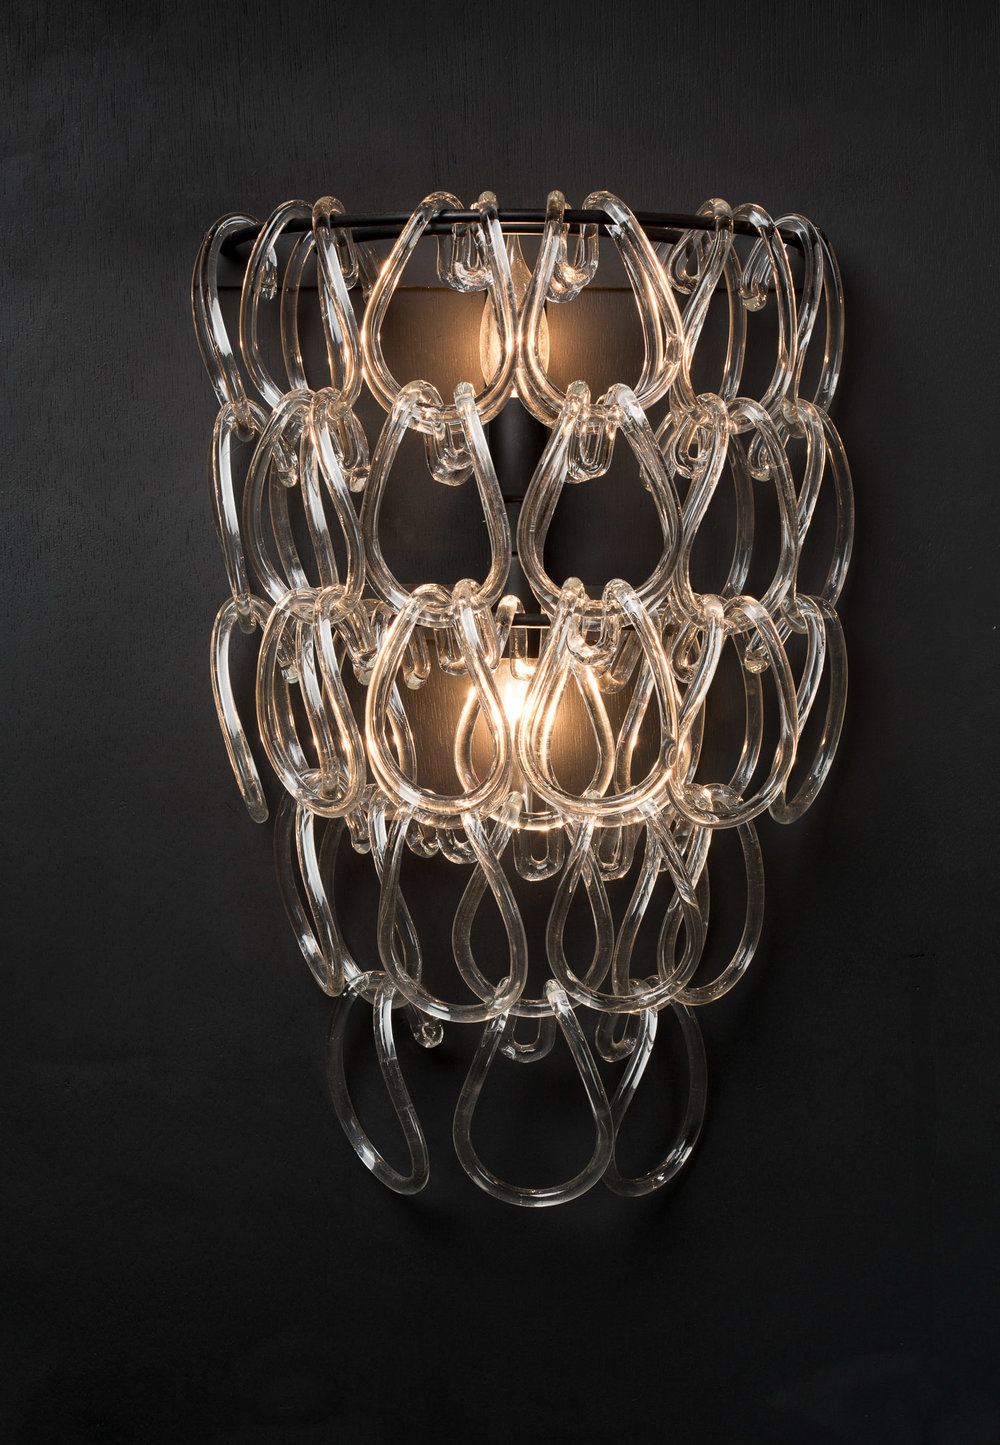 Sconce Light